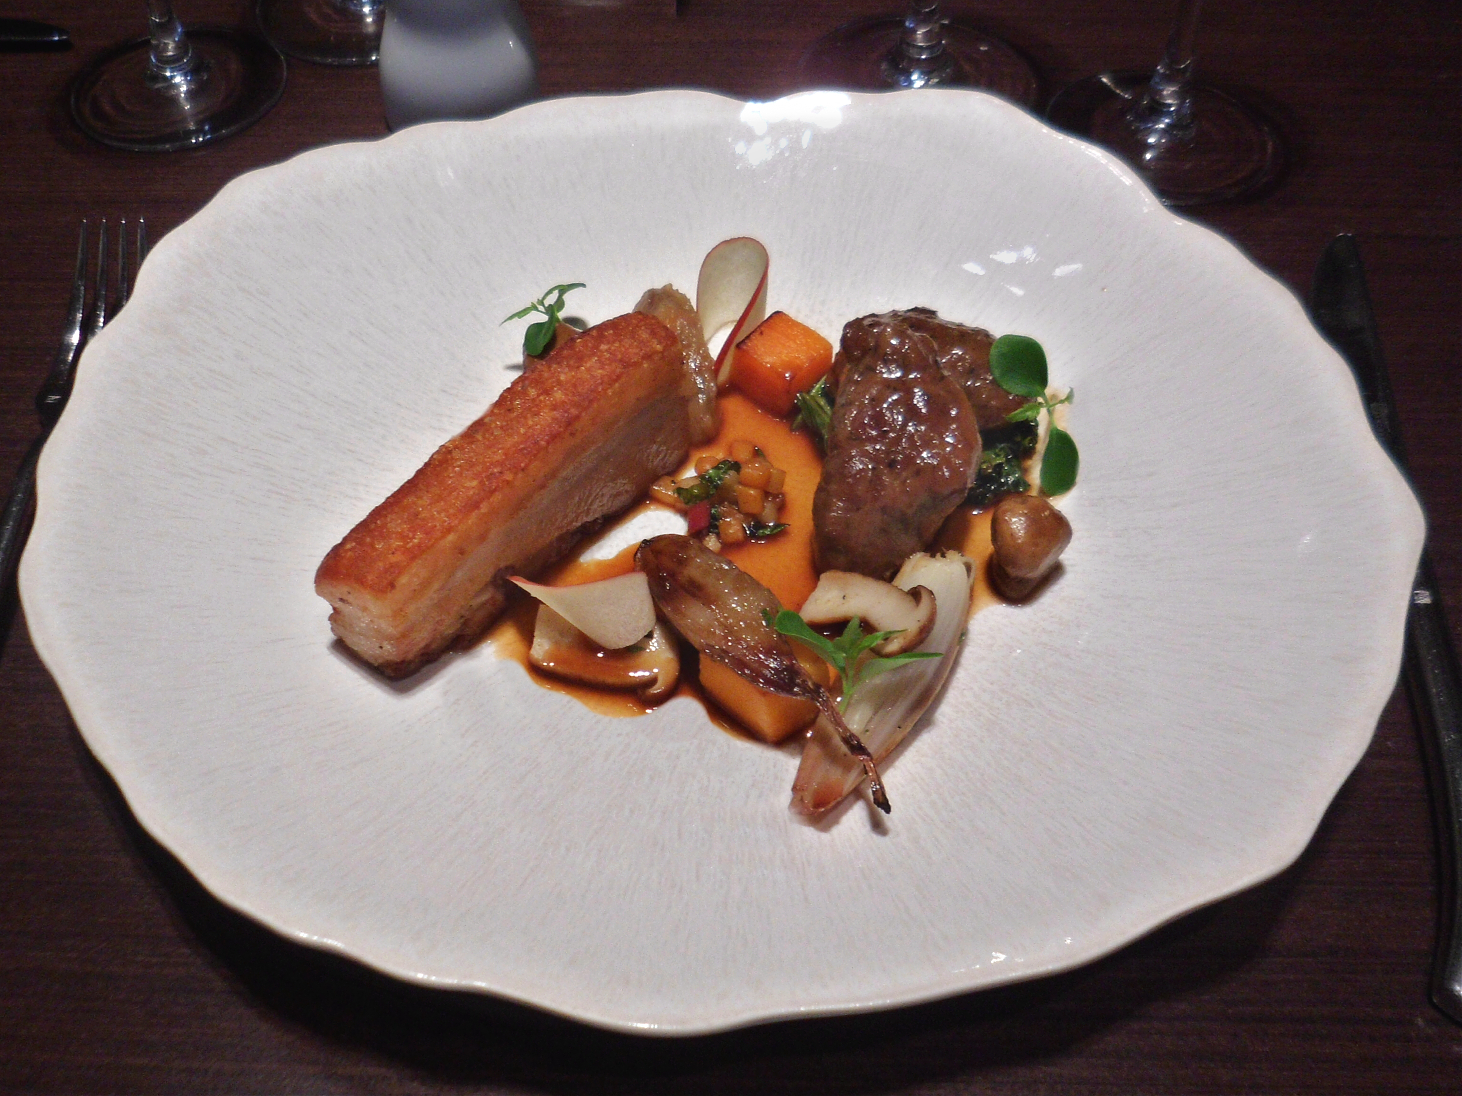 confit belly and cheek of pork, shallots, ceps and carrots